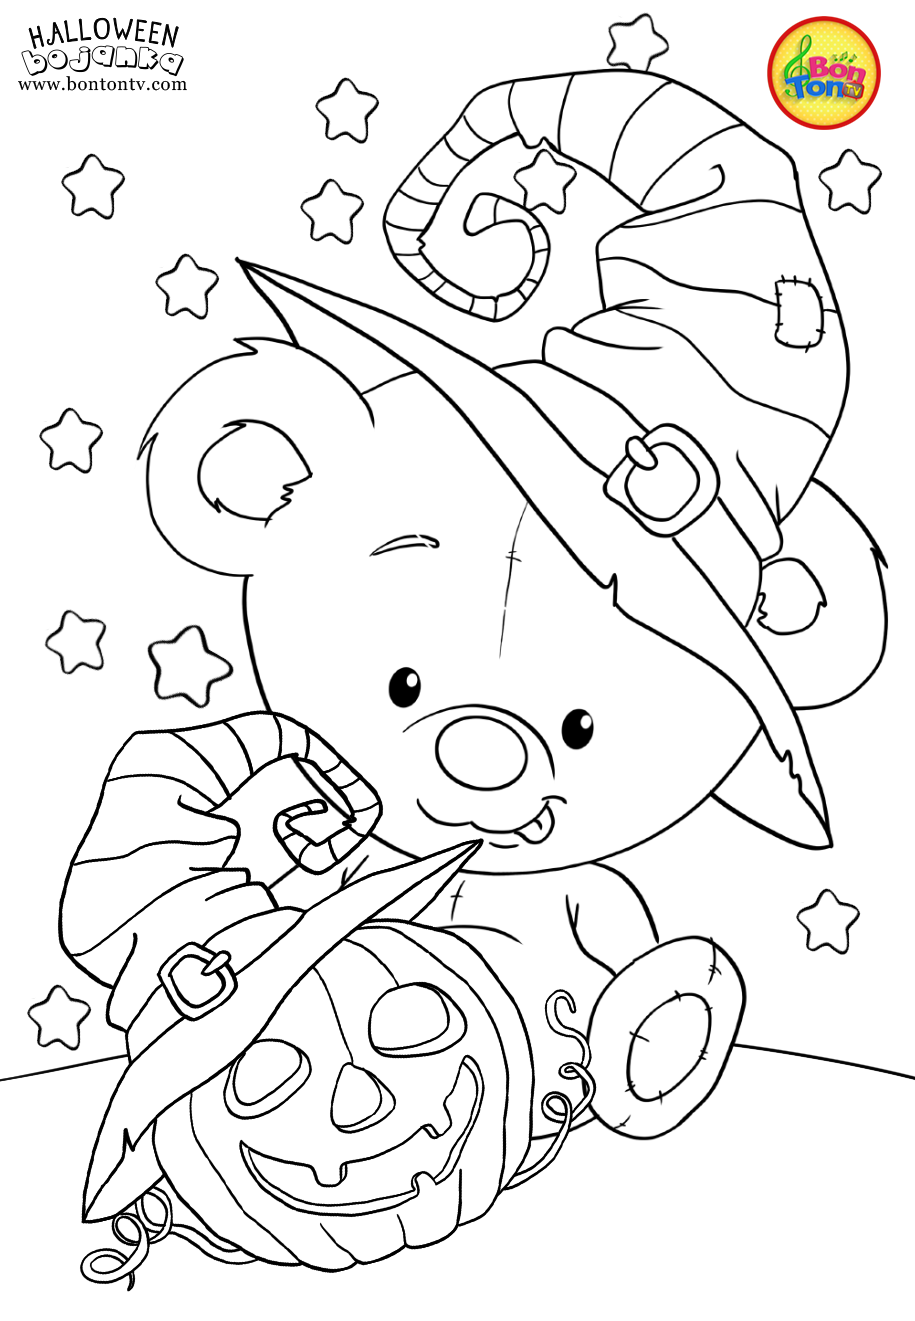 Halloween Coloring Pages For Kids Free Preschool Printables Noc Vjestica Bojanke Cute Halloween Coloring Book Scary Halloween Crafts Cute Coloring Pages